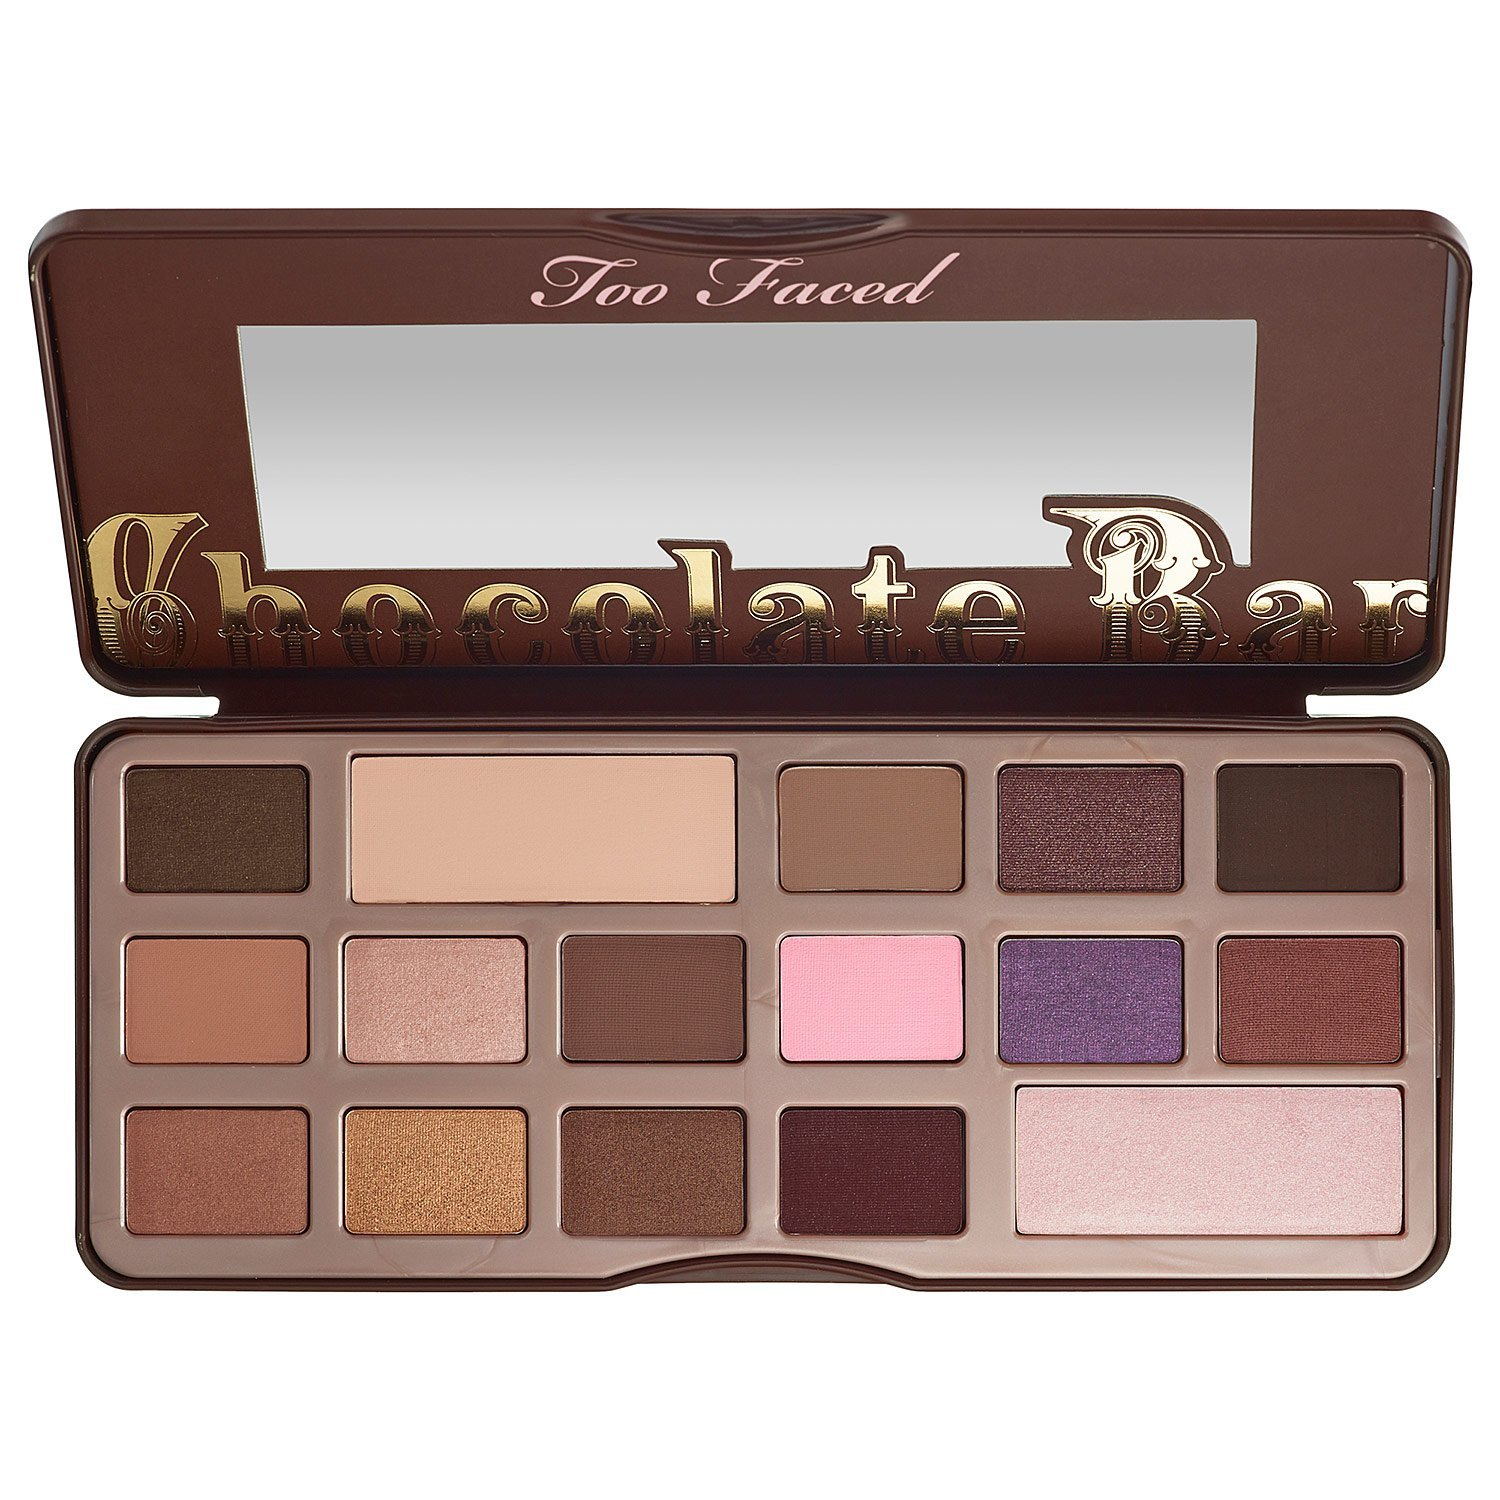 Тени Too Faced Chocolate Bar Palette